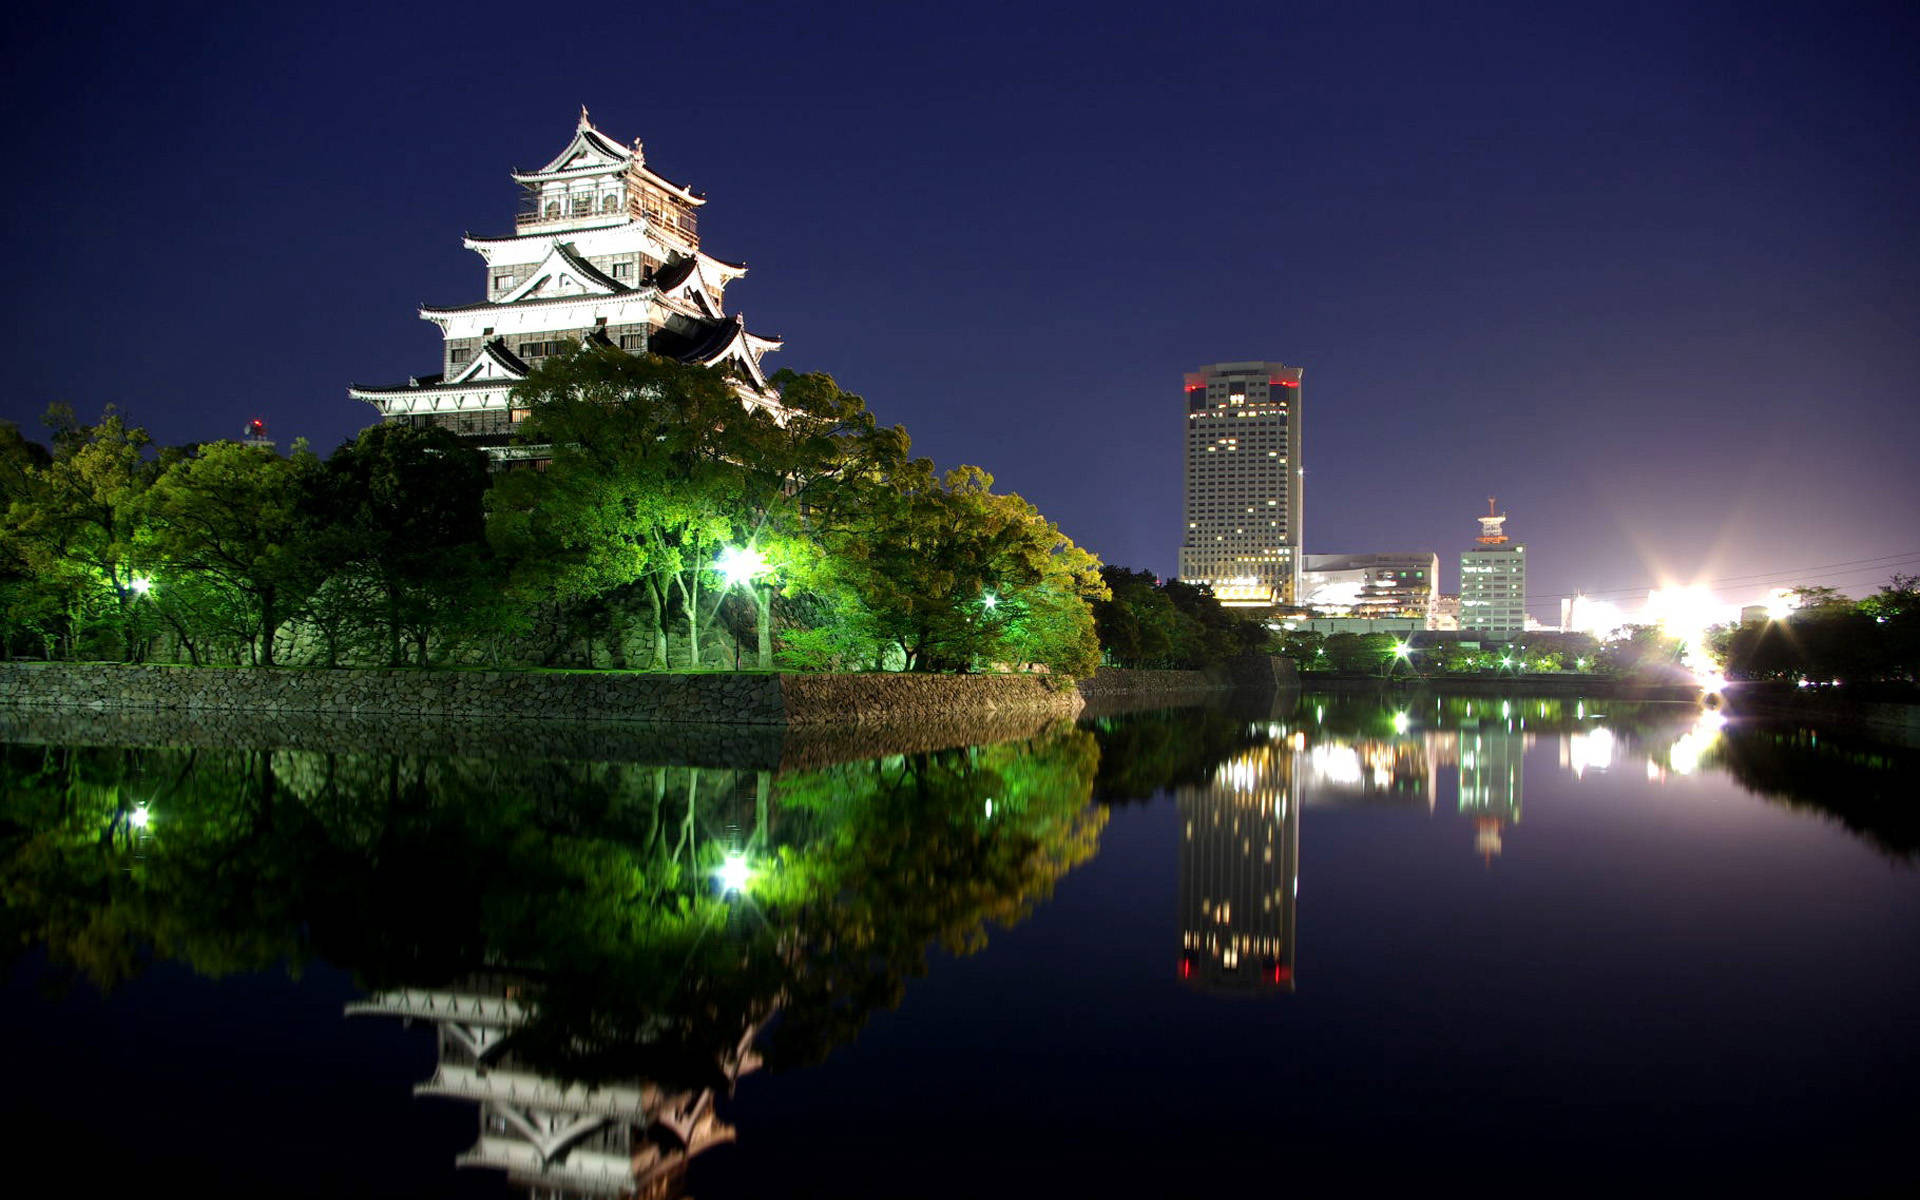 Hiroshima Japan City Wallpaper Night